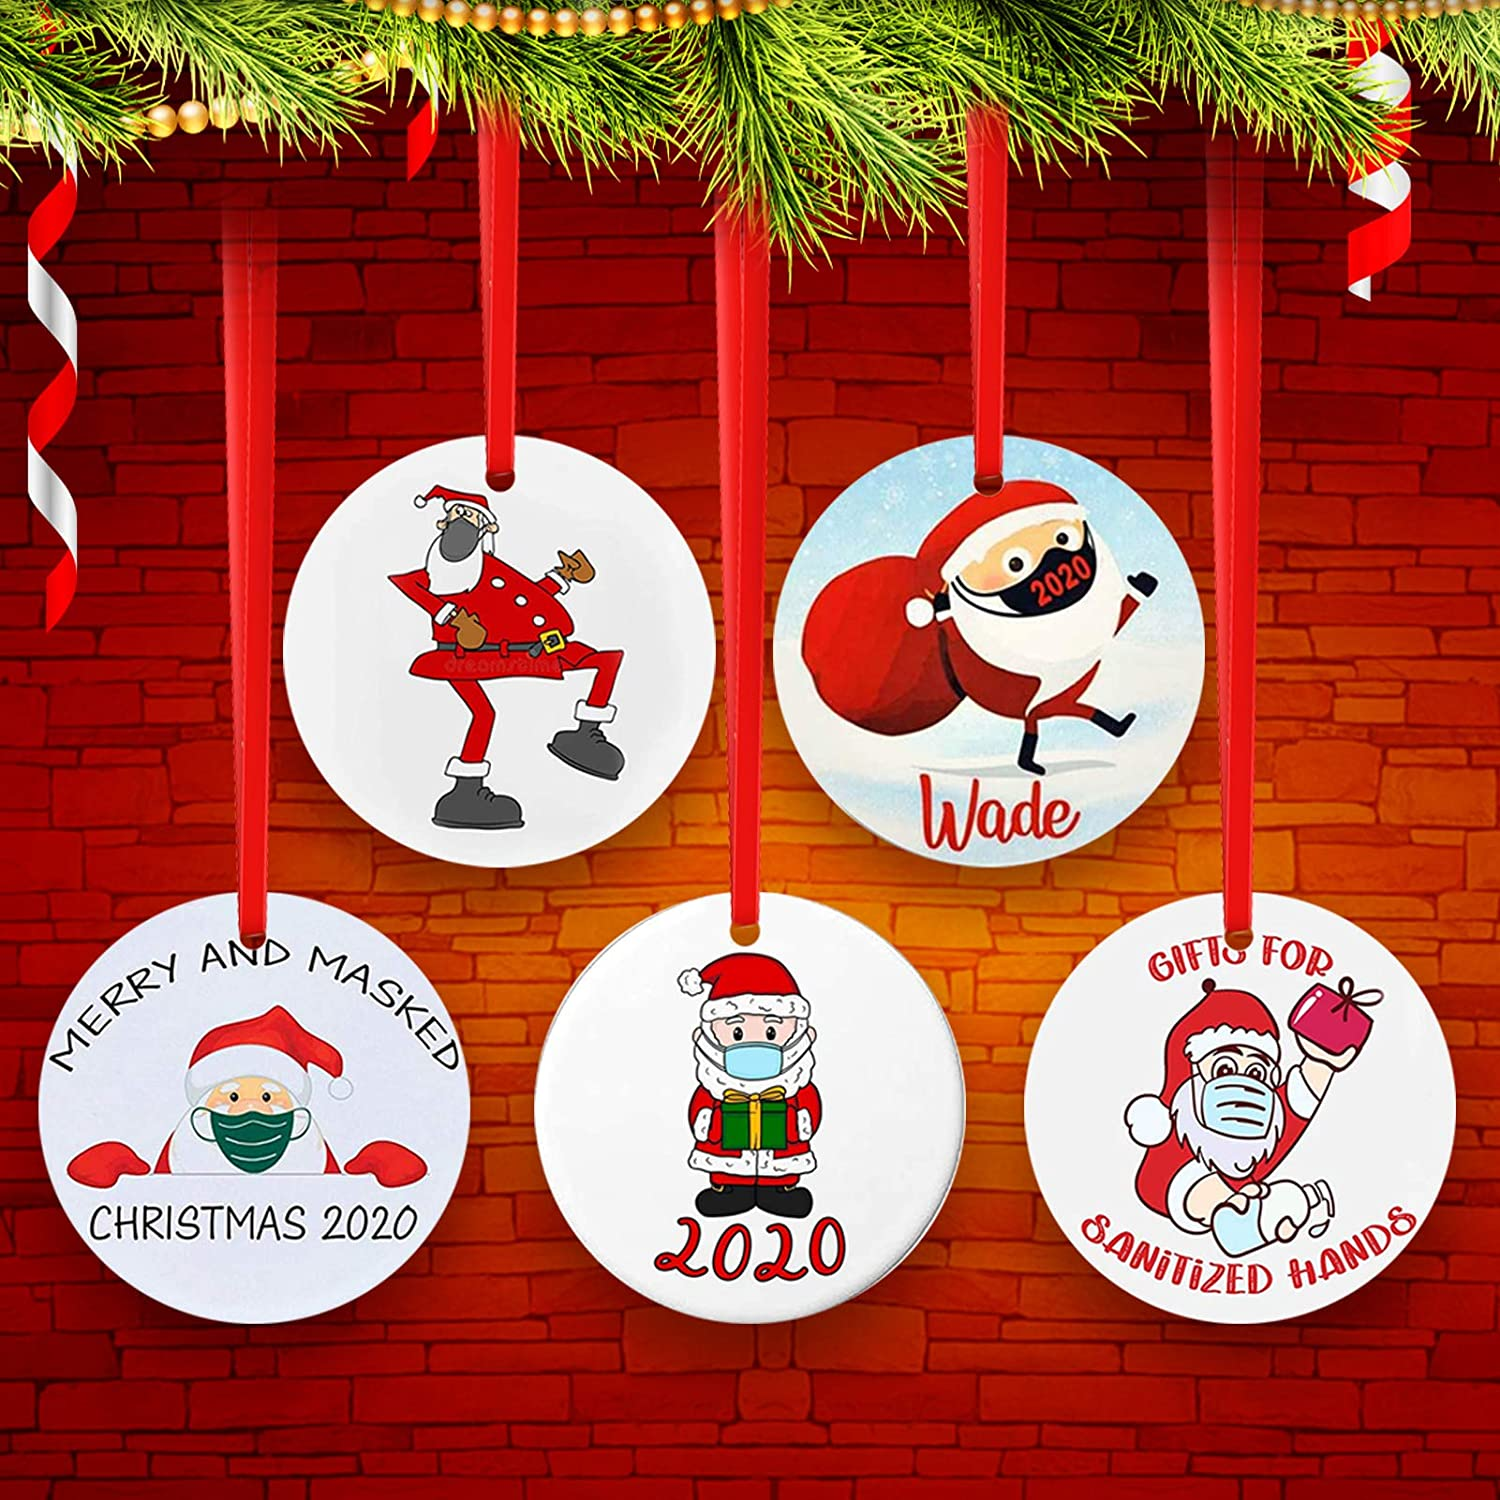 5 Pieces 2020 Christmas Tree Ornaments with Masks, Quarantine Survivor Christmas Pendants Gift Indoor, Home/Party/Restaurant/Bar Christmas Tree Decoration, 5 Different Pattern of 2020 Quarantine Theme